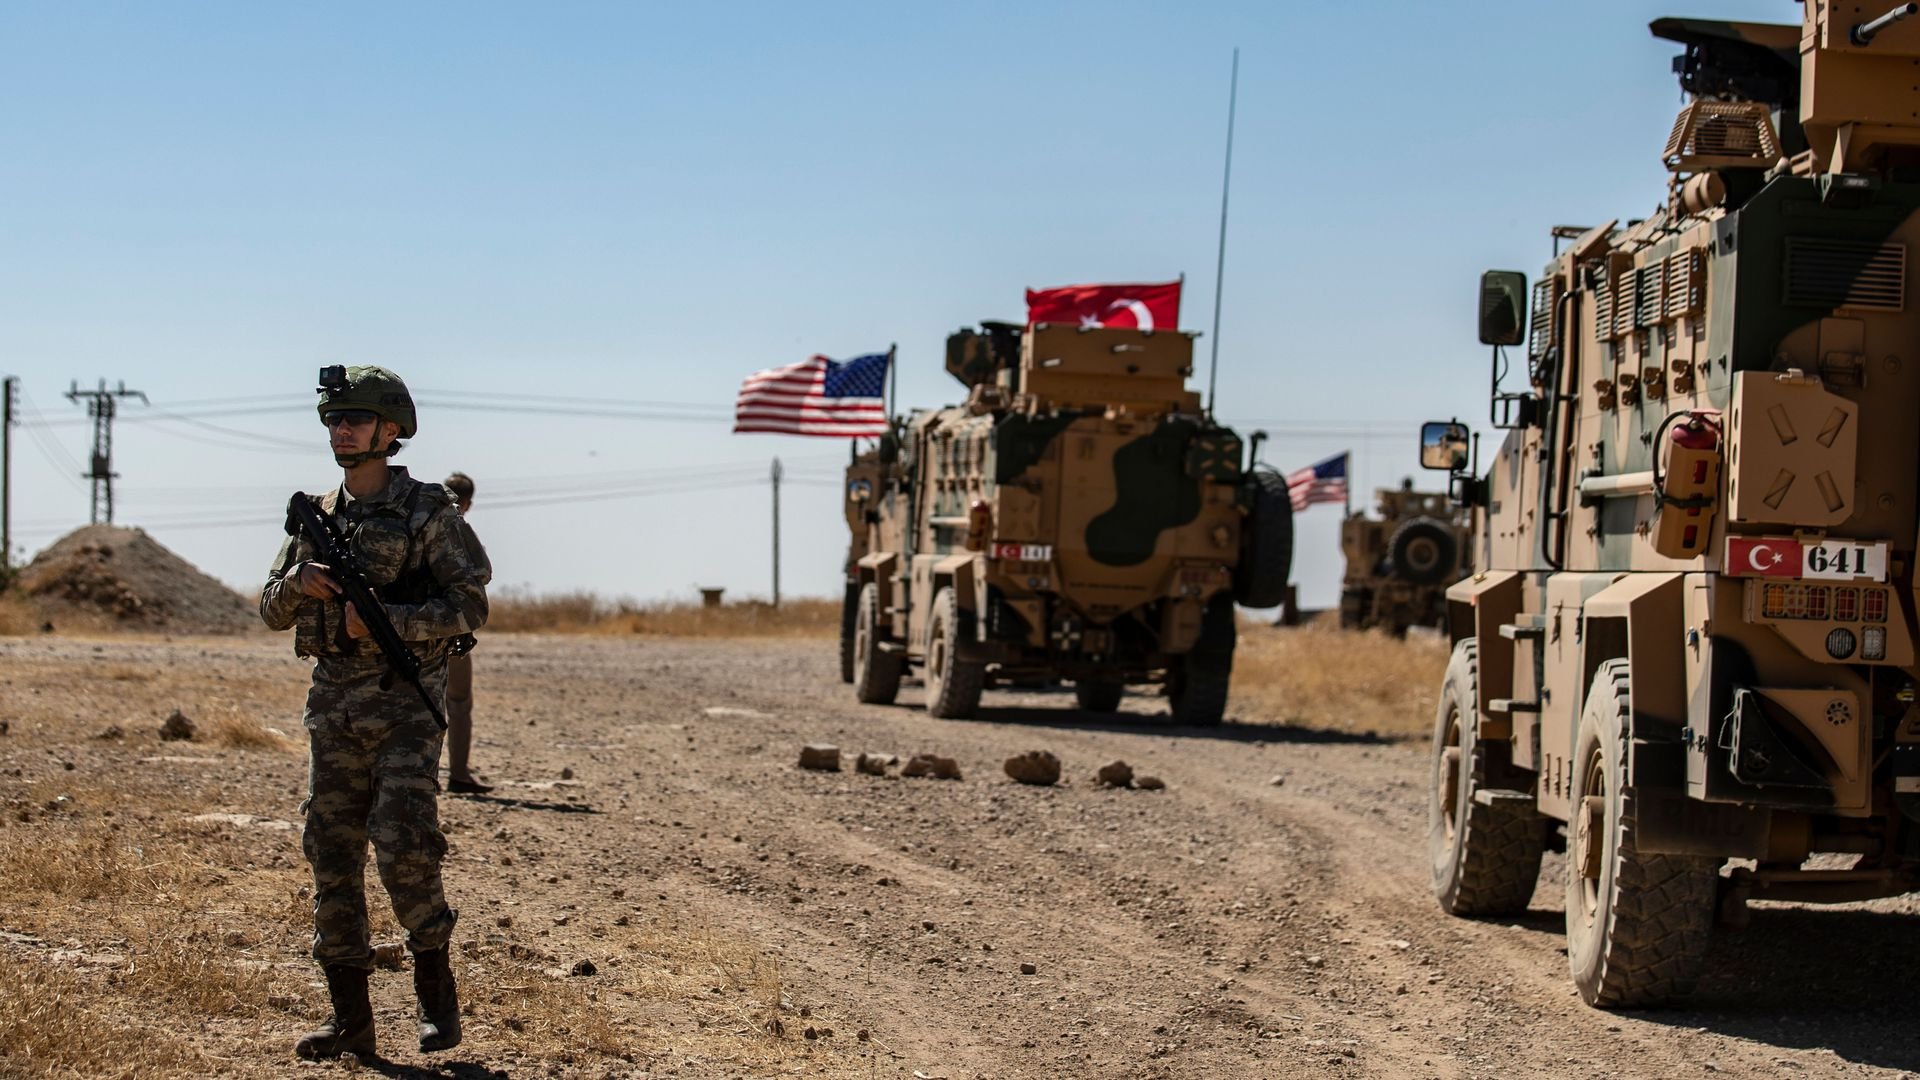 A US soldier stands guard during a joint patrol with Turkish troops in the Syrian village of al-Hashisha on the outskirts of Tal Abyad town along the border with Turkish troops, on September 8, 2019.